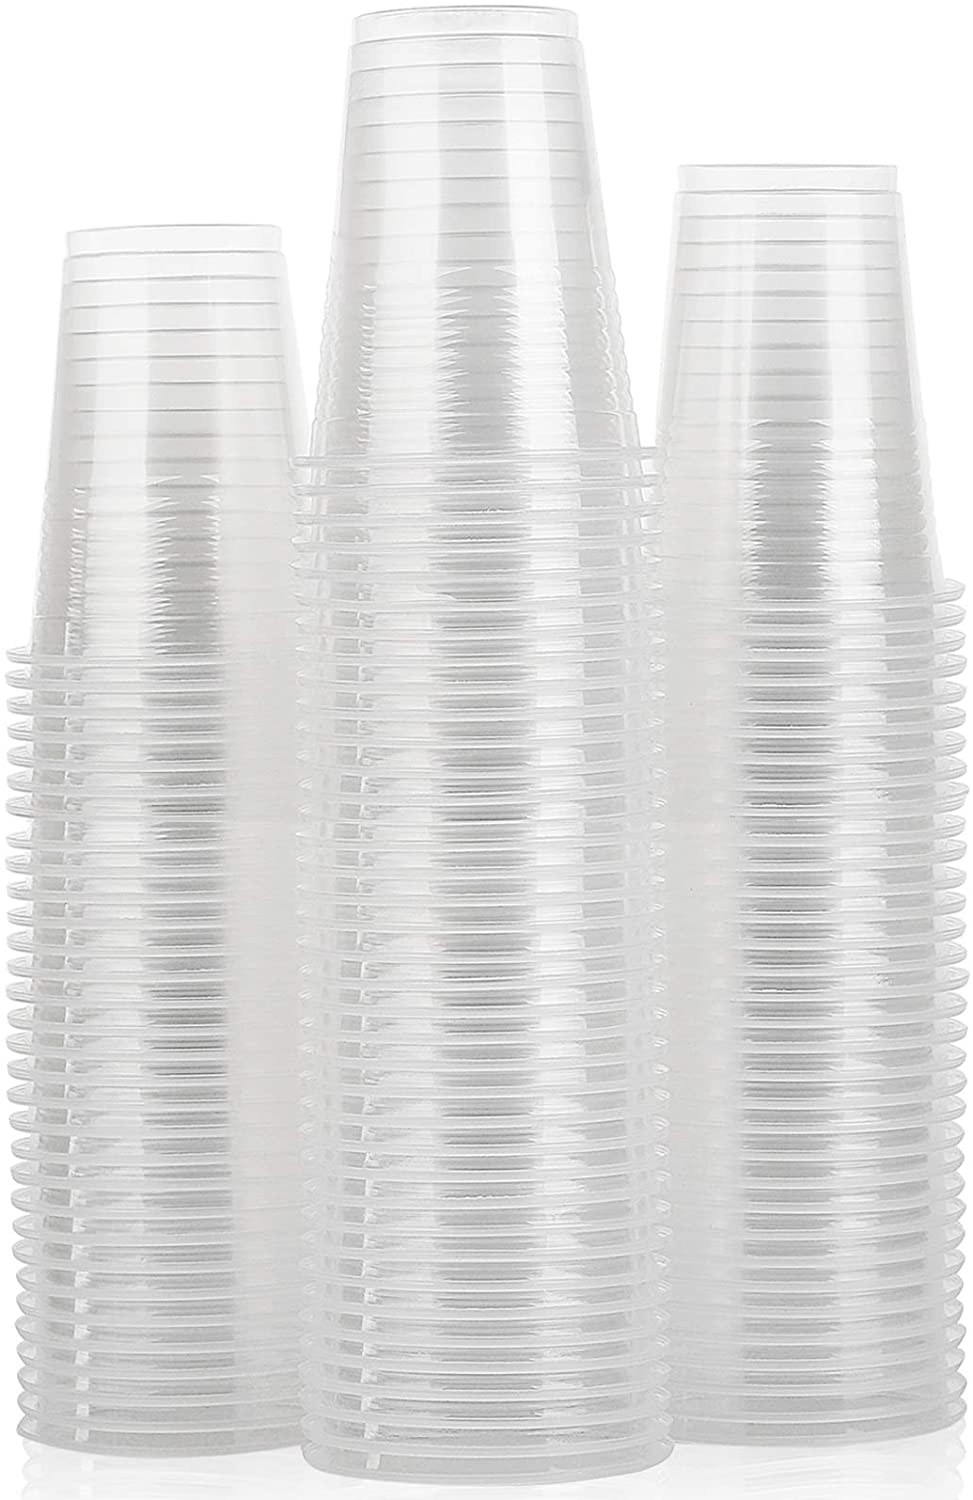 [100 Pack 8 Oz ] Plastic Cups, Plastic Cups, Clear Plastic Cups 8 Oz Clear Cups, Disposable Clear Plastic Cups Water Cups Disposable Cups, 8 Oz Water Clear Plastic Cups Clear Plastic Cups Plastic Cups